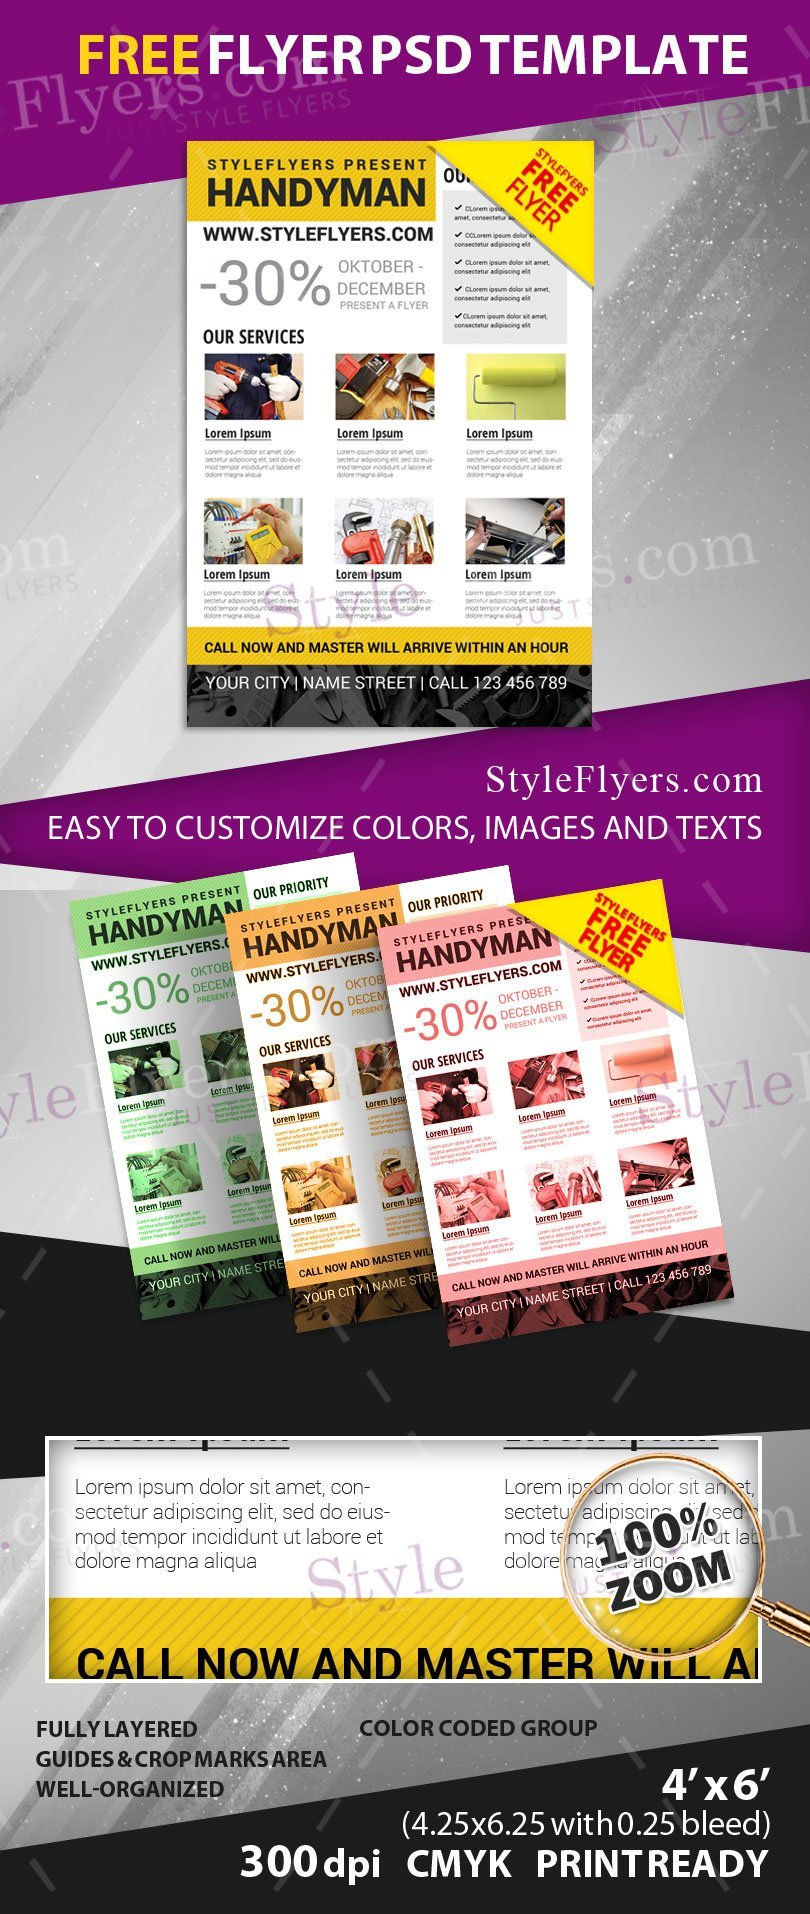 handyman psd flyer template styleflyers start using a reliable help we can offer our assistance in promoting your services for our new handyman psd flyer template